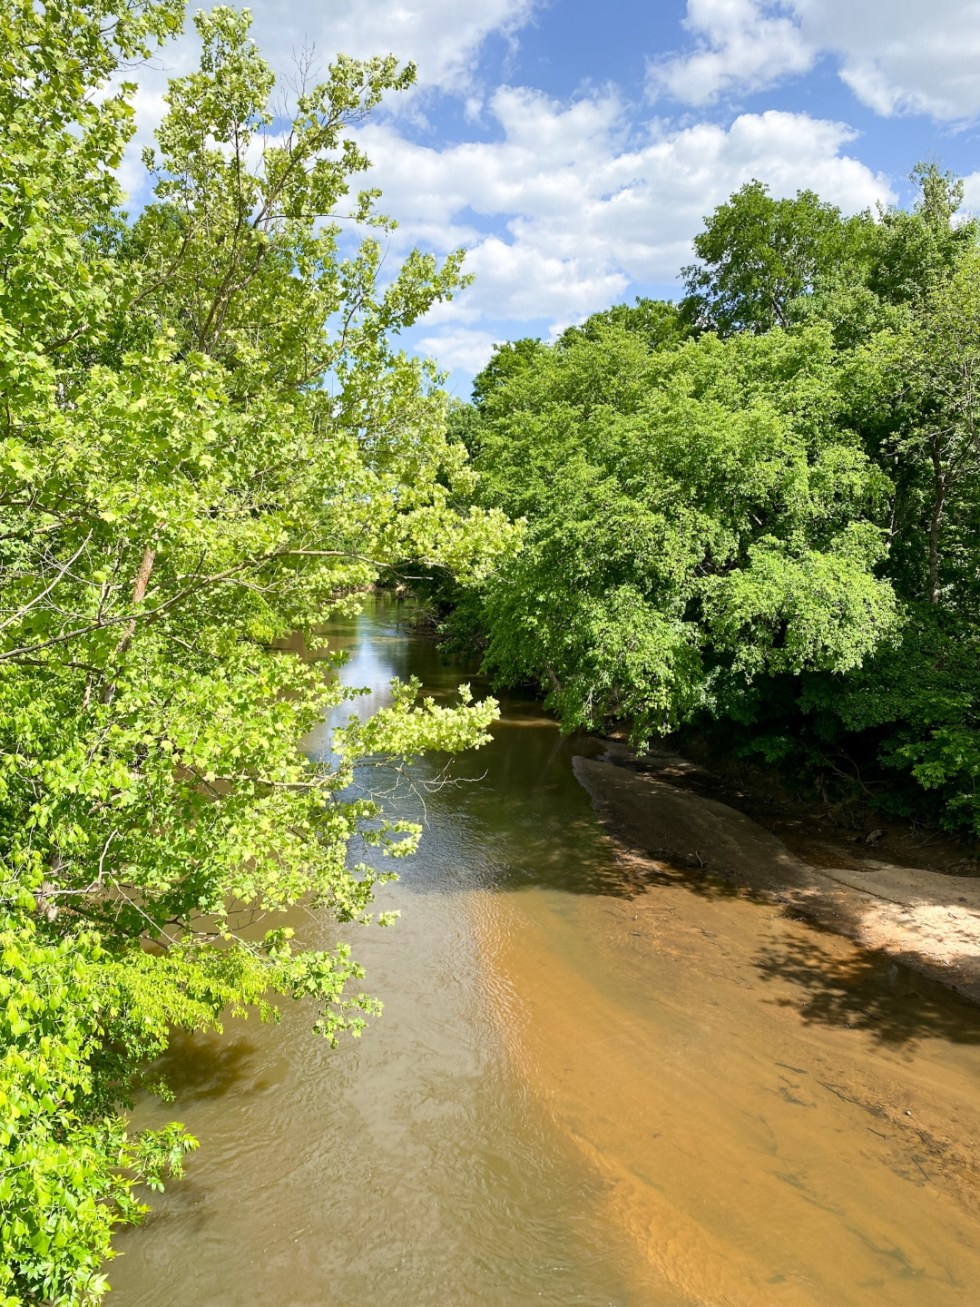 An Afternoon Trip to Franklin County, NC - I'm Fixin' To - @imfixintoblog | Franklin County NC by popular North Carolina travel blog, I'm Fixin' To: image of a river.